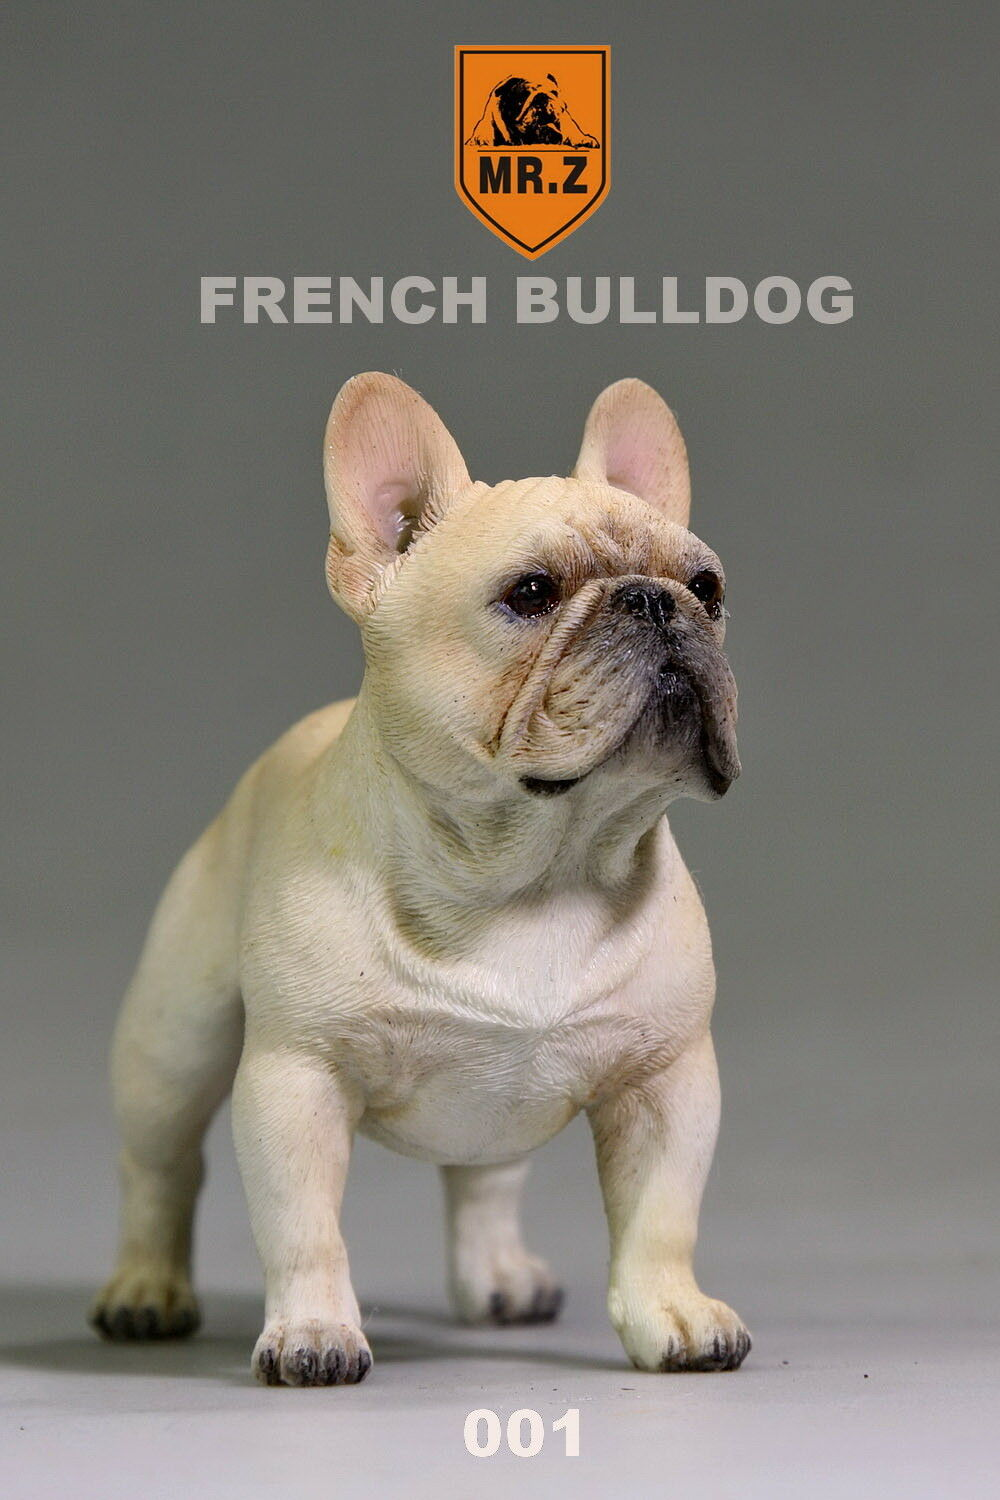 MR.Z Dog Model French Bulldog Resin Statue Cream Car Car Car Interior Decoration 001 New 08ab4a